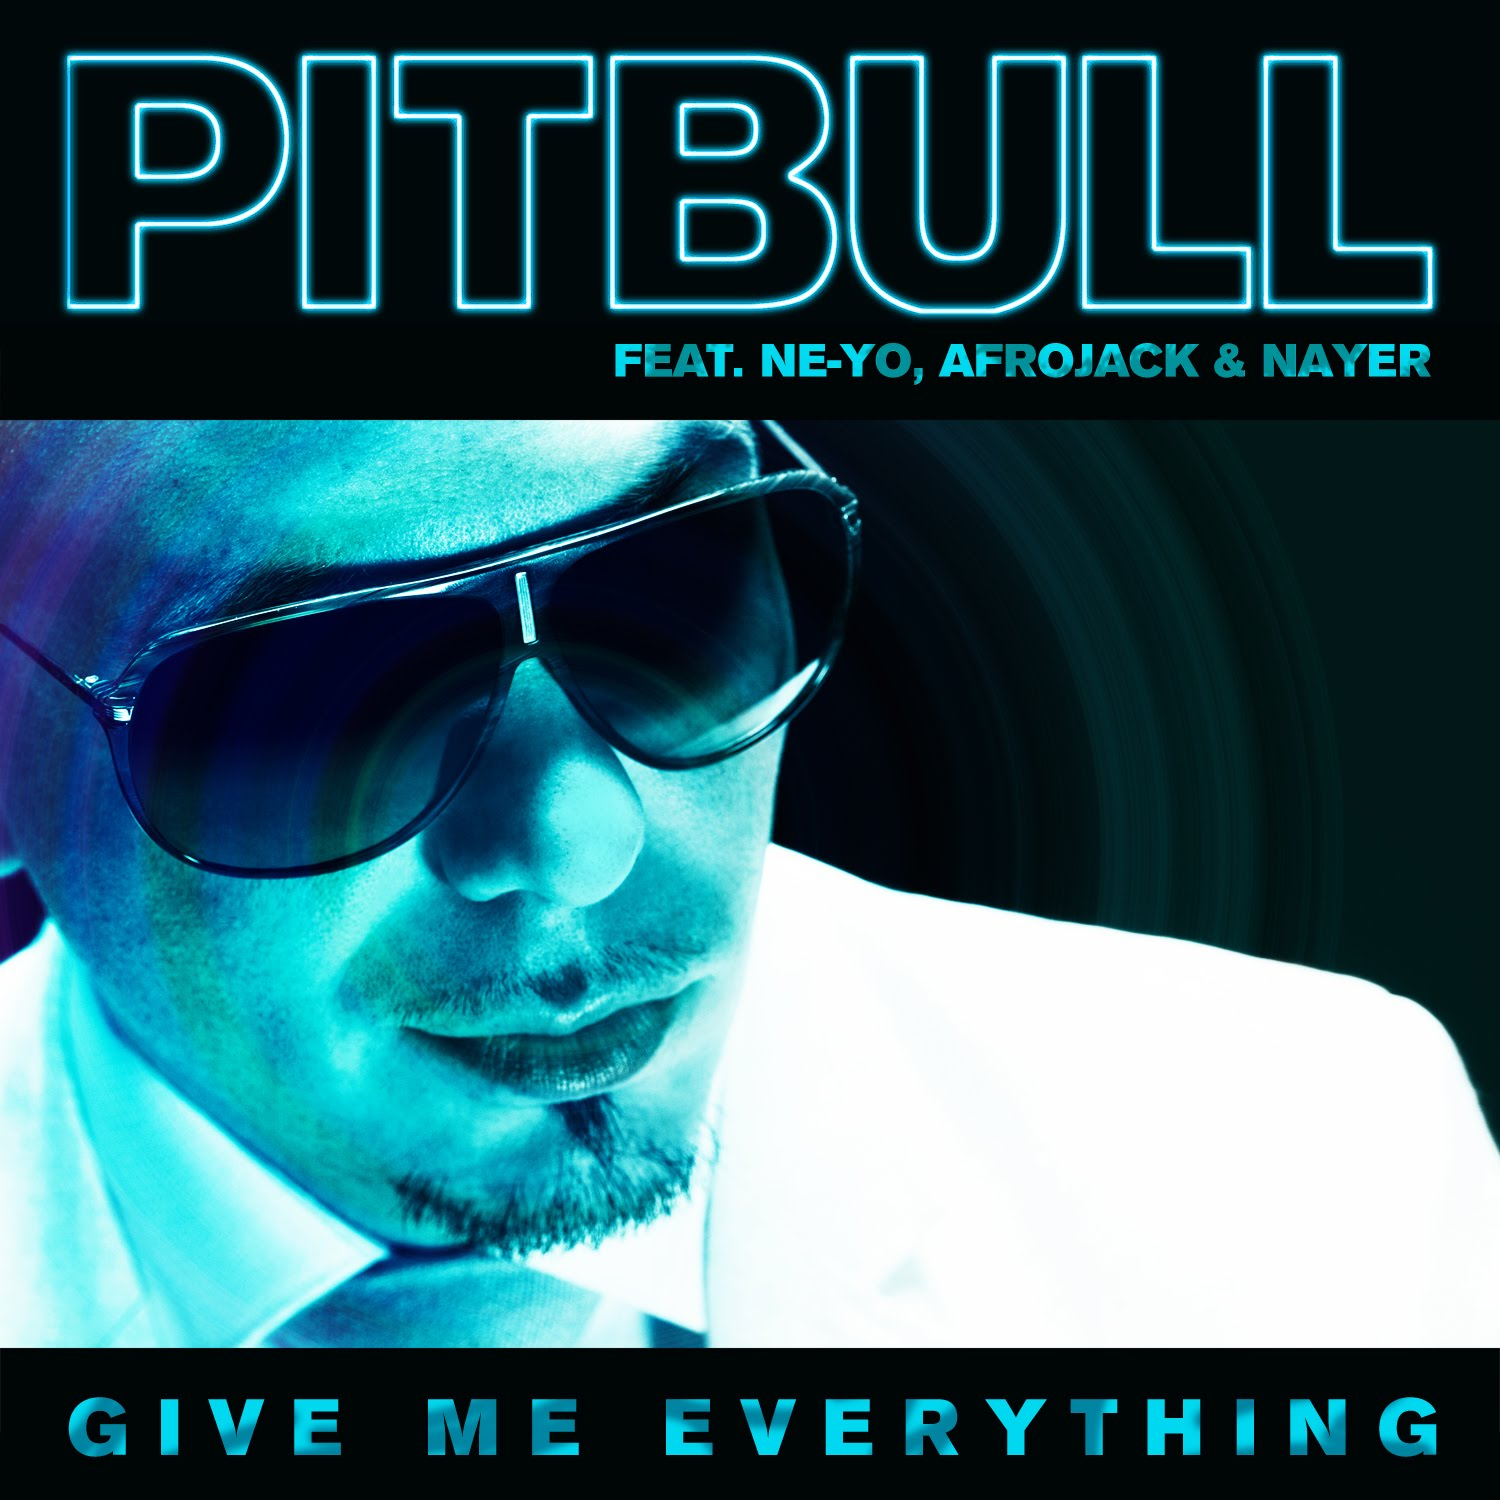 http://4.bp.blogspot.com/-zWoCcNVruts/TcCTa_xenRI/AAAAAAAALlc/Gf1LIEHpHsU/s1600/Pitbull-Give_Me_Everything_%2528Feat._Ne-Yo_Afrojack_And_Nayer%2529-WEB-2011-IMT.jpg